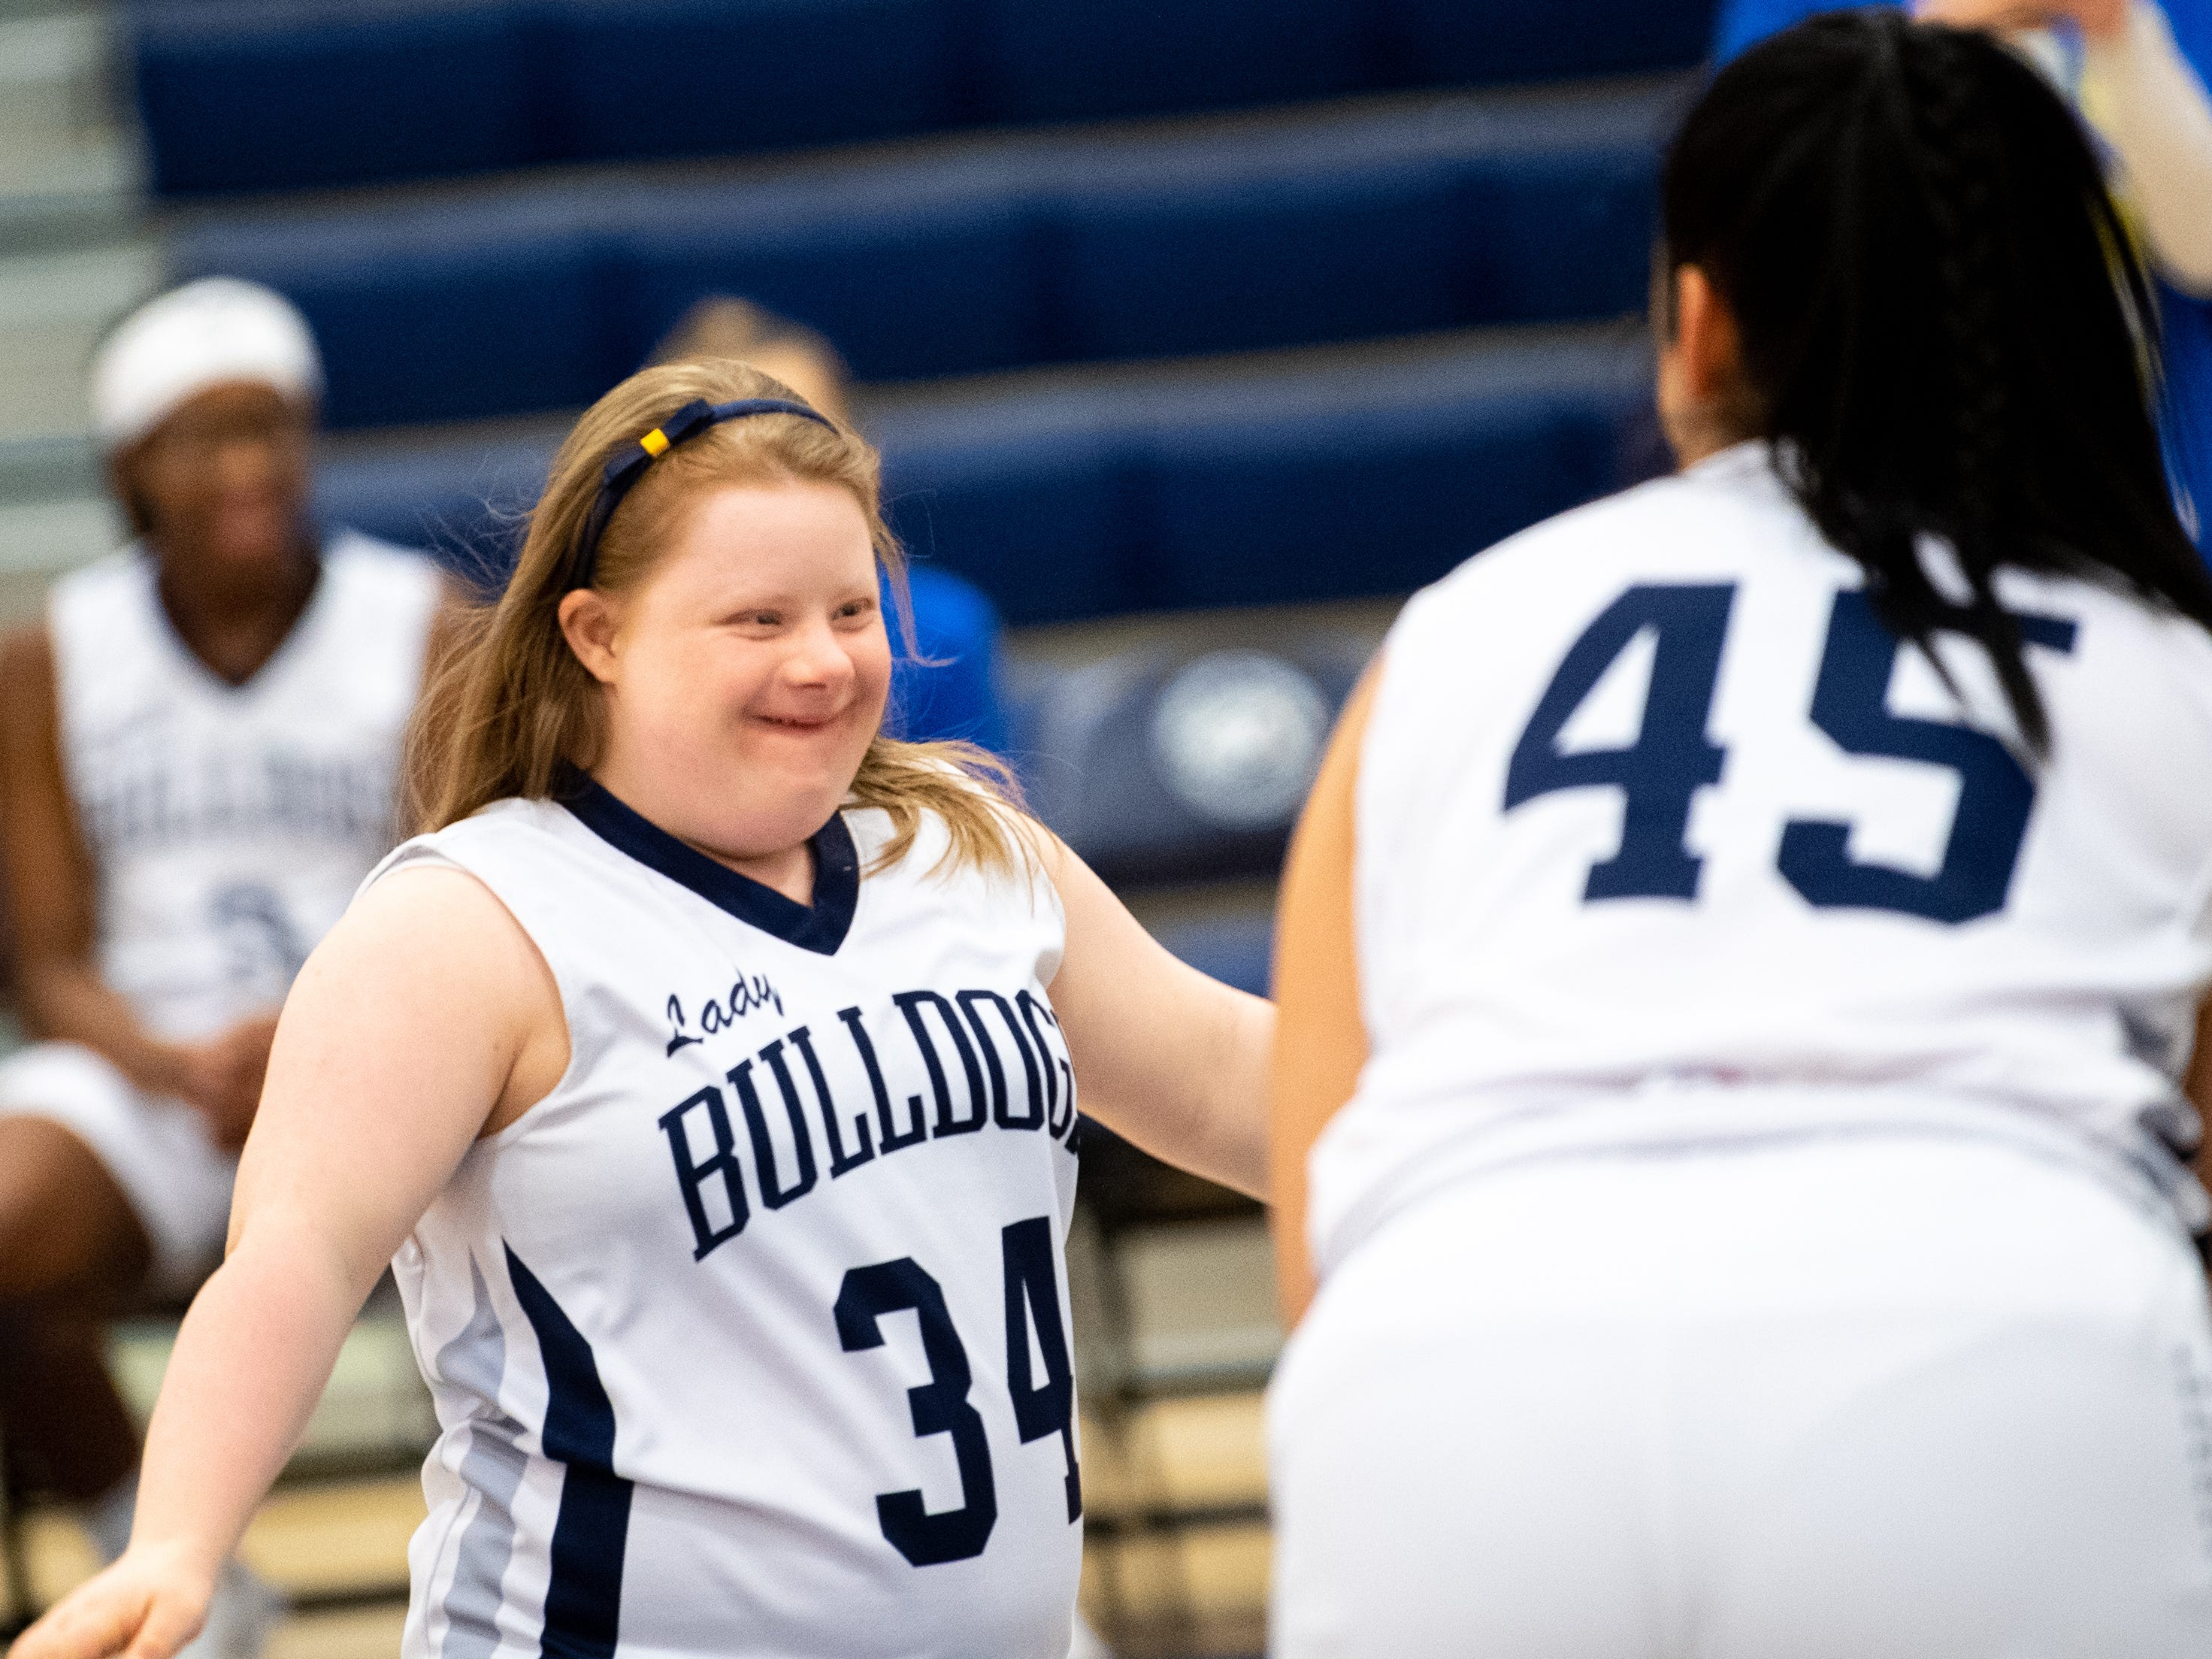 Katie Kniery (34) is all smiles as she makes her way to the basket during the junior varsity girls' basketball game between West York and Dover, February 1, 2019.